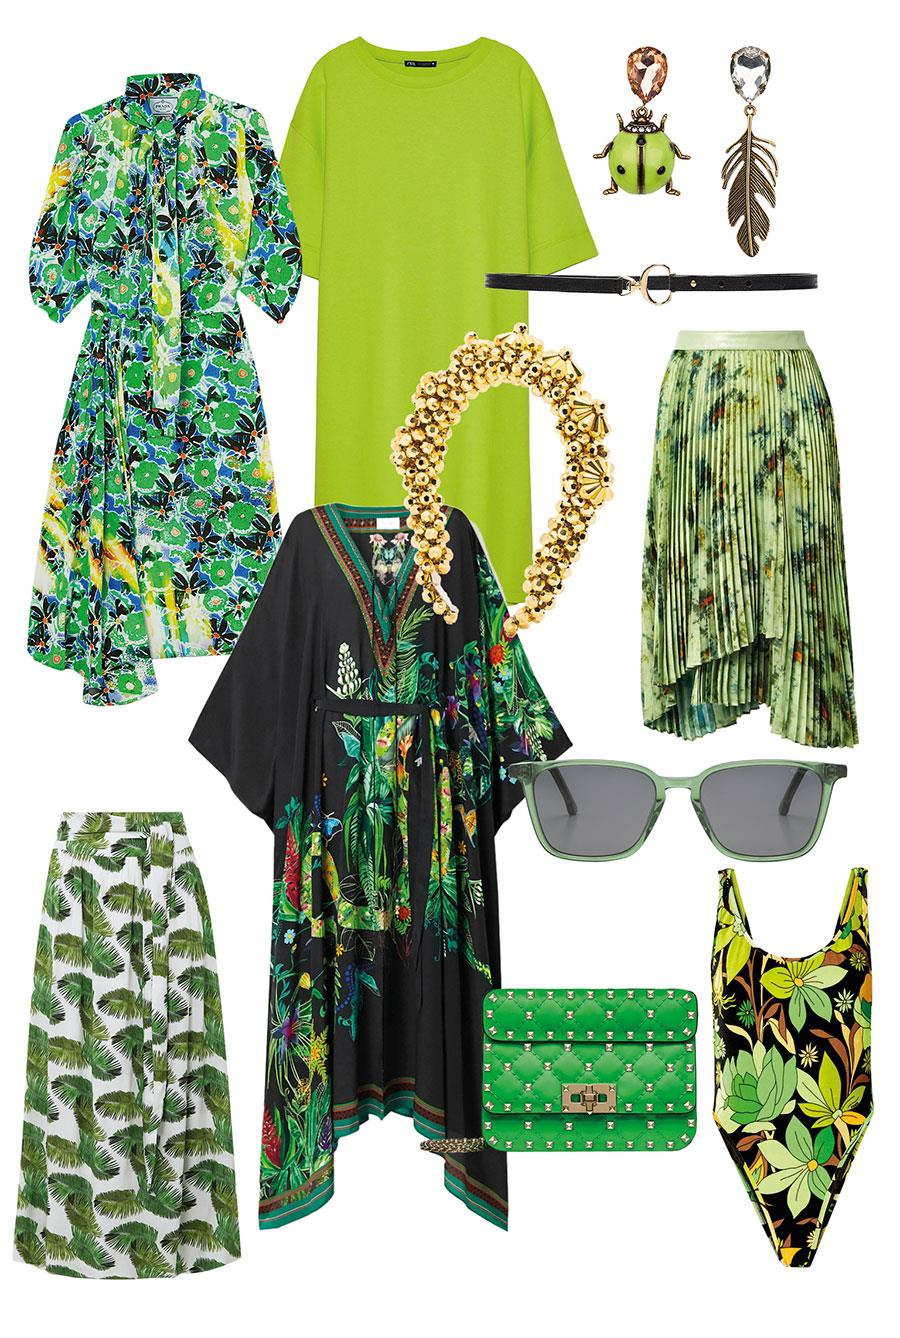 estampado-tropical-moda-verano-10